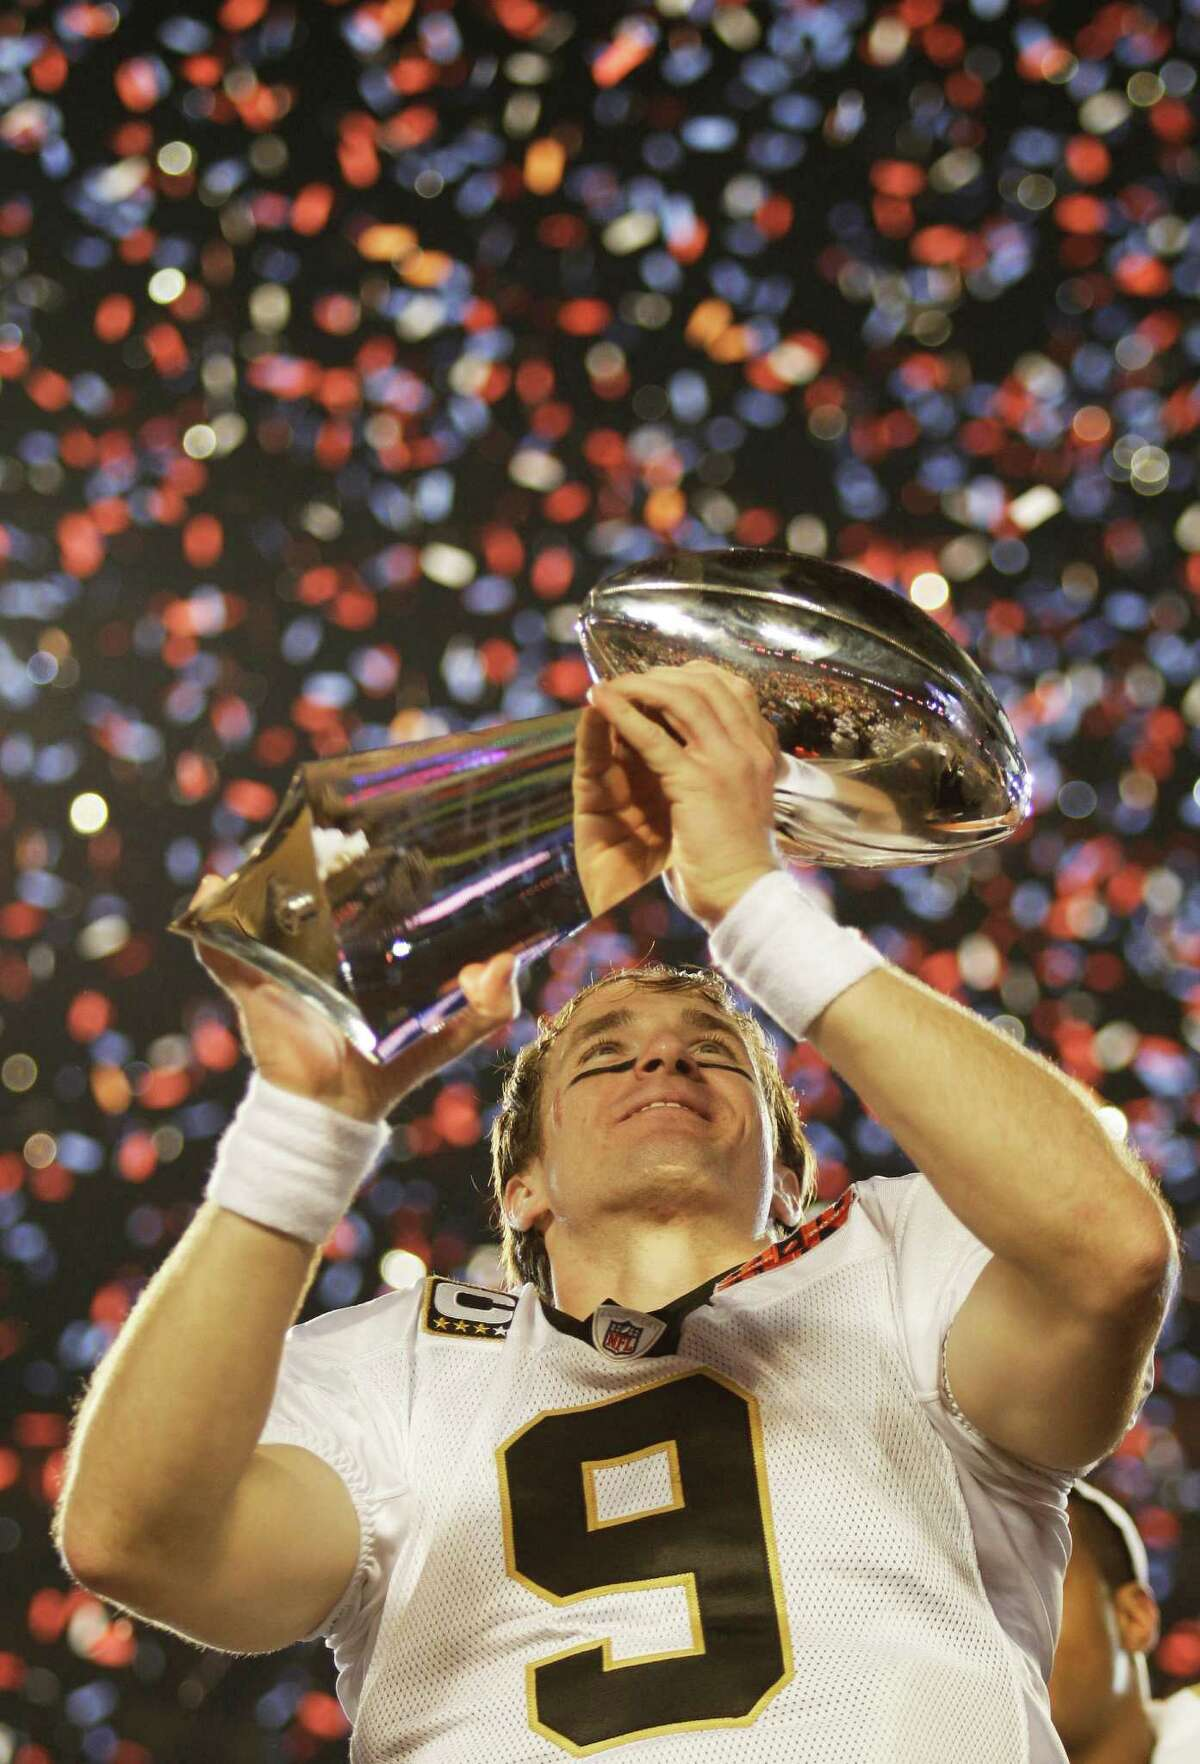 FILE - This Feb. 7, 2010, file photo shows New Orleans Saints quarterback Drew Brees holding the Vince Lombardi Trophy after the NFL Super Bowl XLIV football game against the Indianapolis Colts, in Miami. Brees was voted the 2010 Male Athlete of the Year, chosen by members of The Associated Press, Friday, Dec. 17, 2010. (AP Photo/David J. Phillip, File)